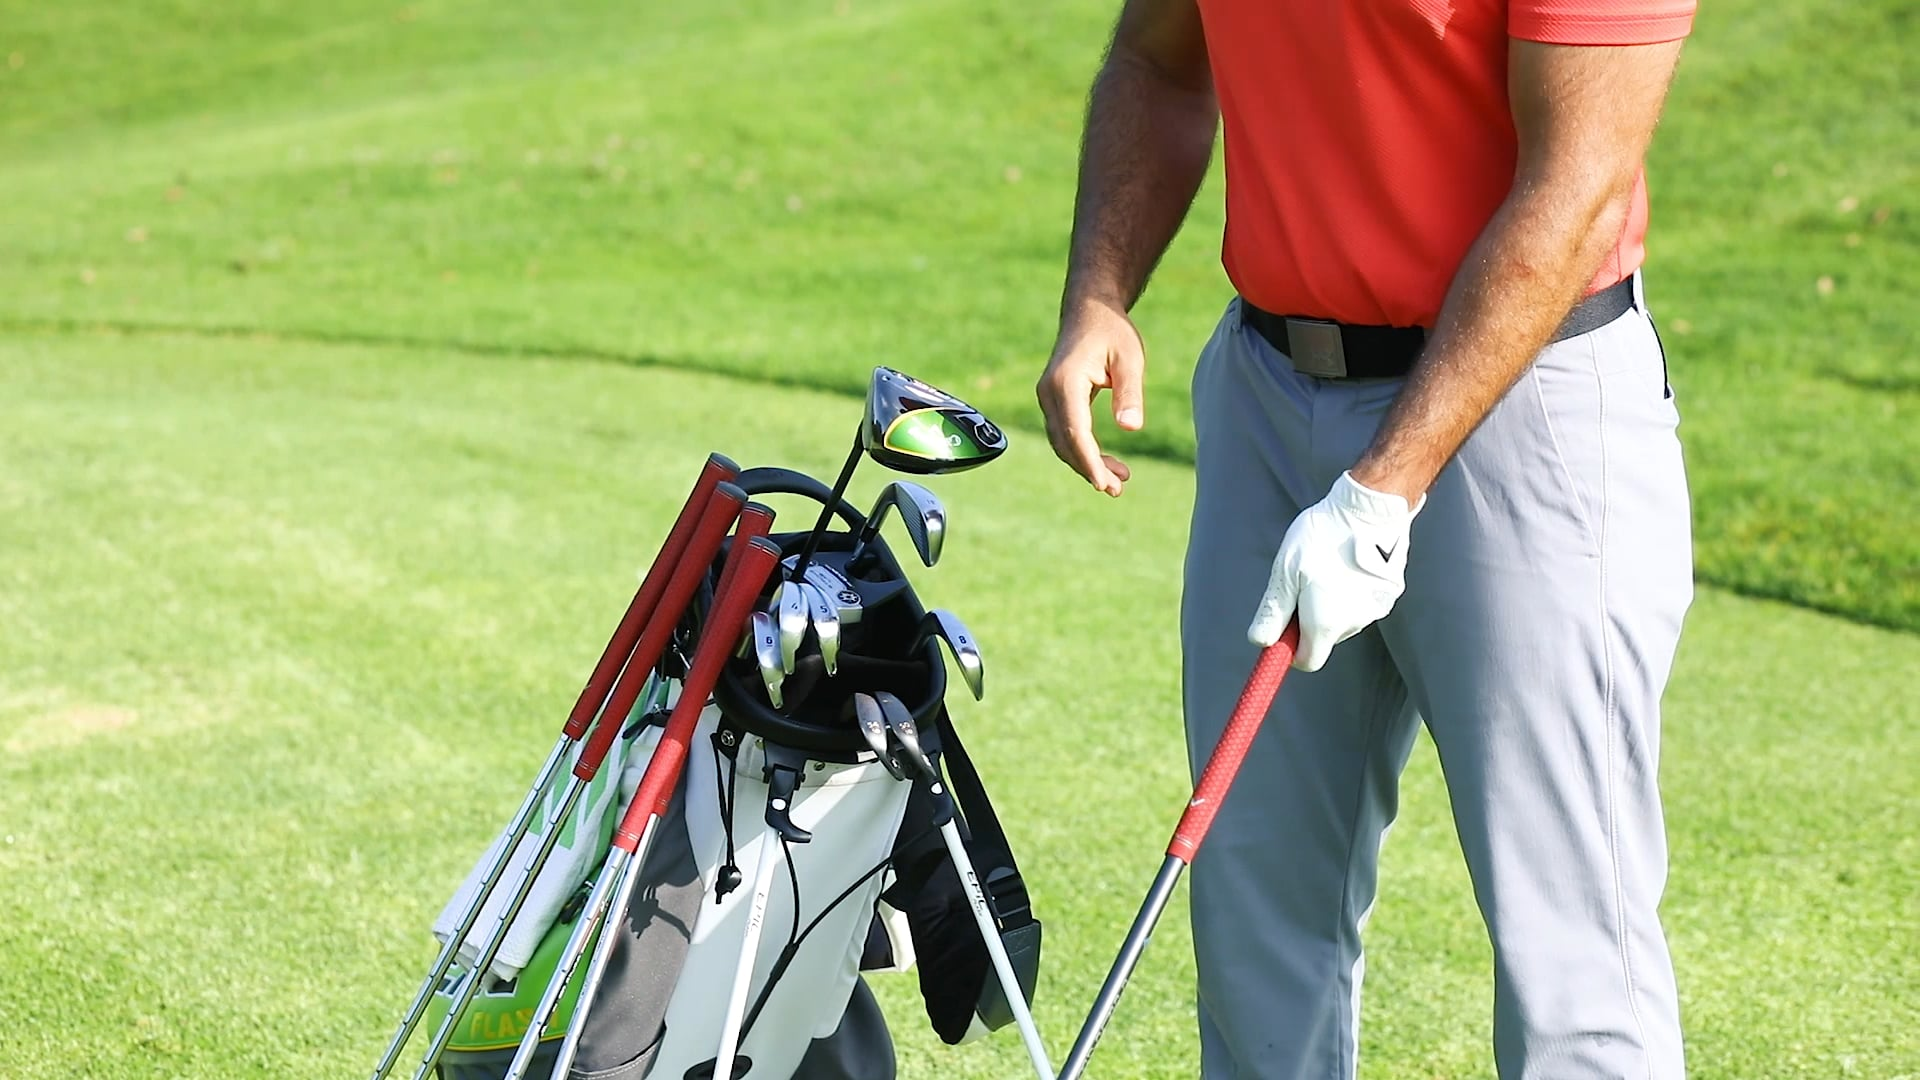 How all of the golf clubs work